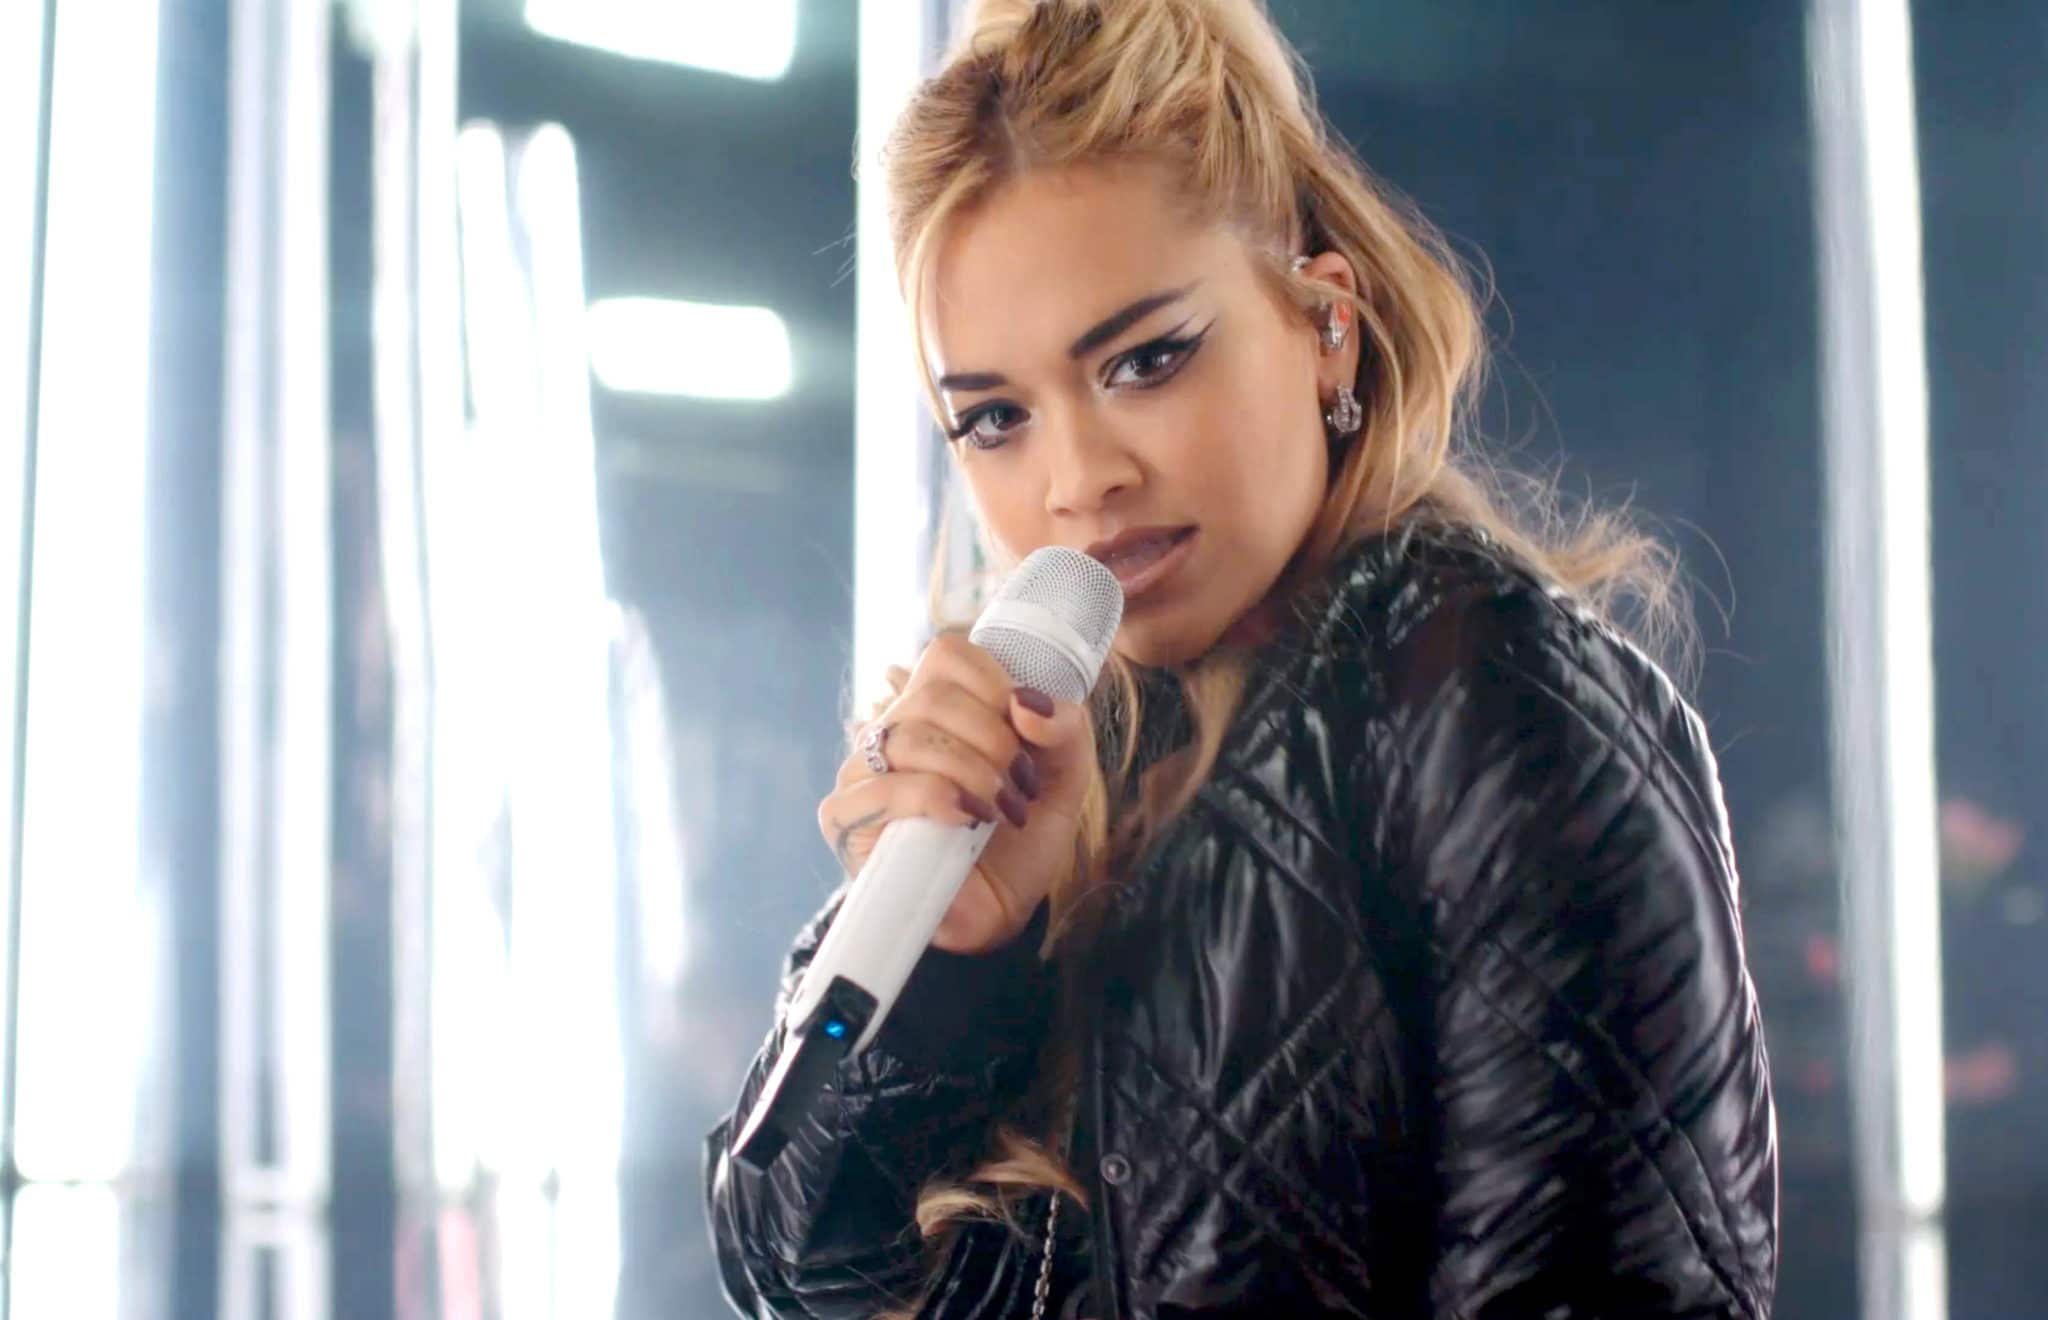 Rita Ora is to perform at the Sydney Gay and Lesbian Mardi Gras